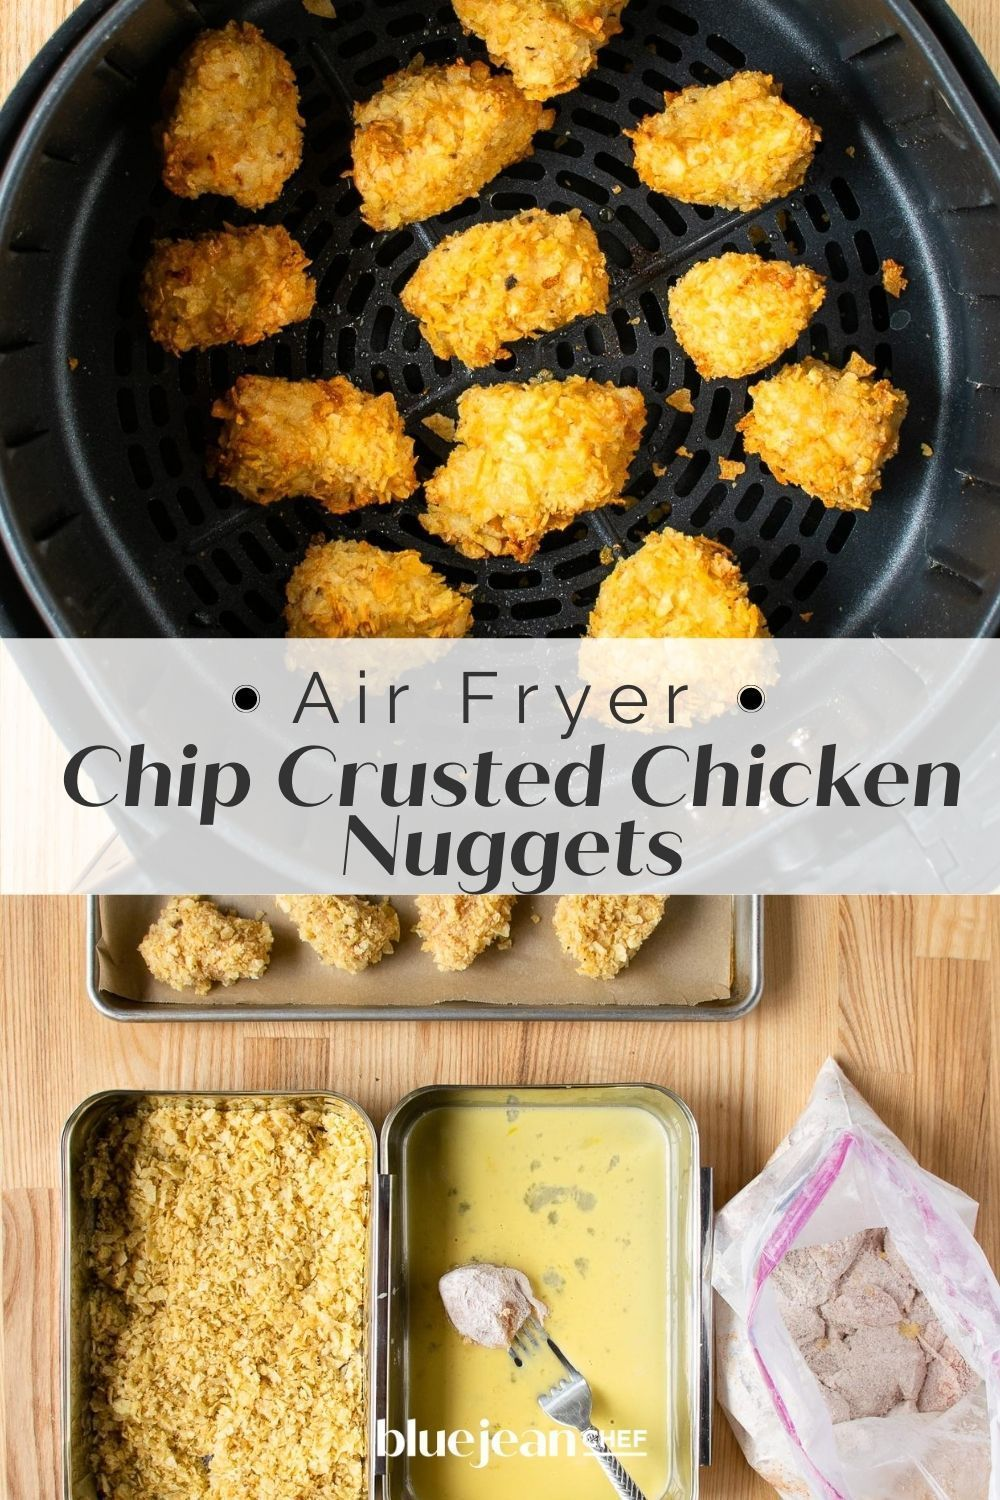 Air Fryer Chip Crusted Chicken Nuggets Blue Jean Chef